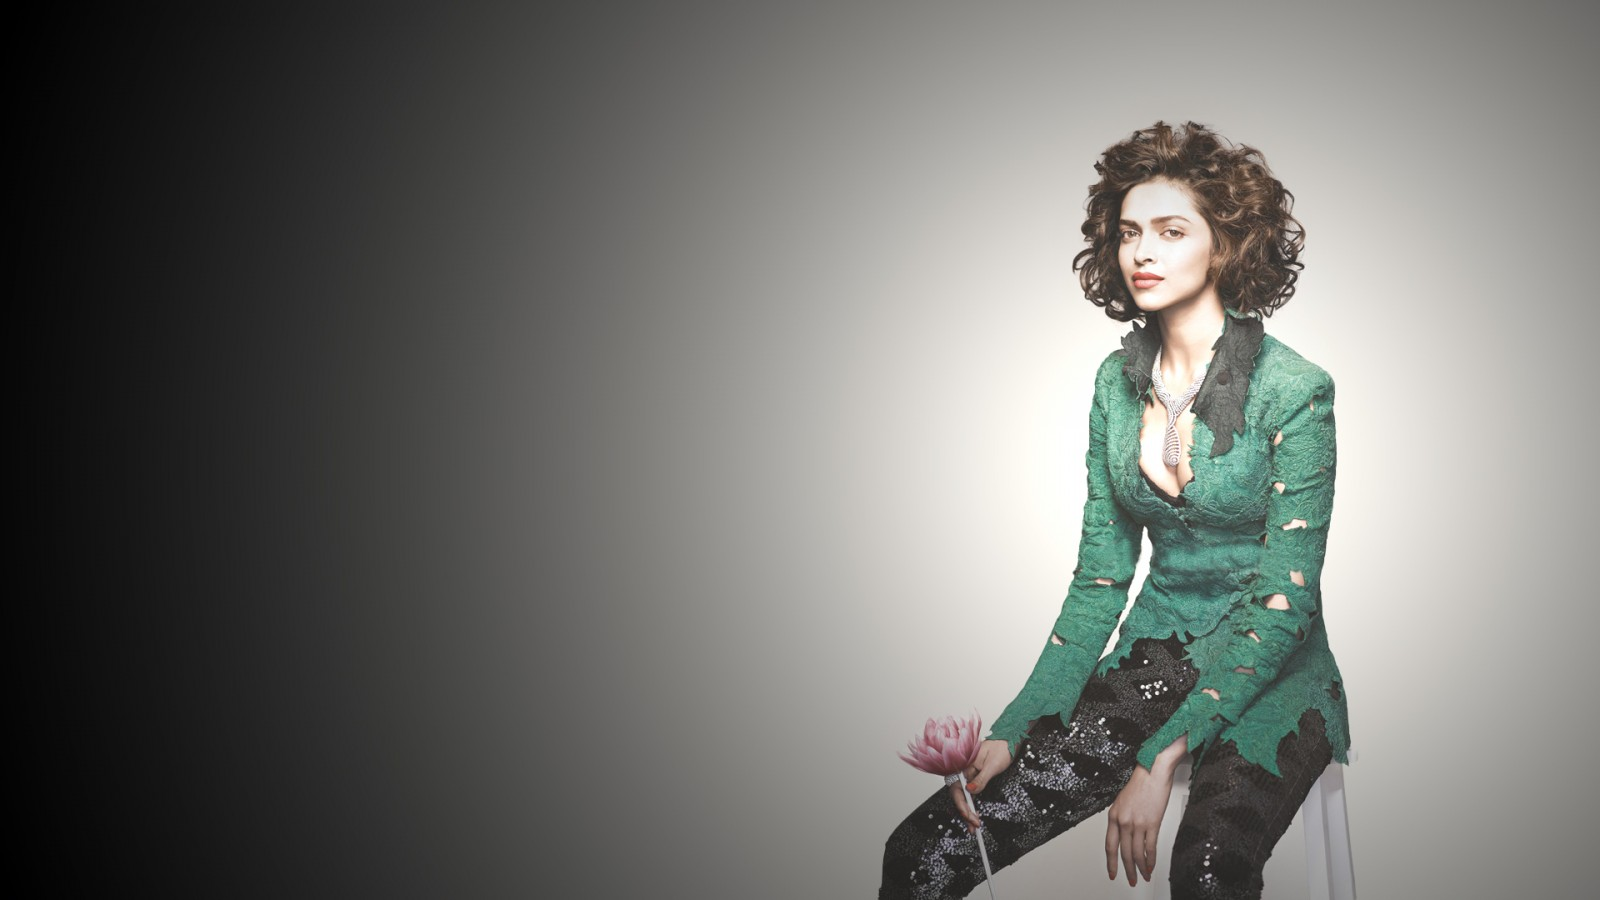 Cute Love Wallpaper Hq Deepika Padukone 58 Wallpapers Hd Wallpapers Id 15233